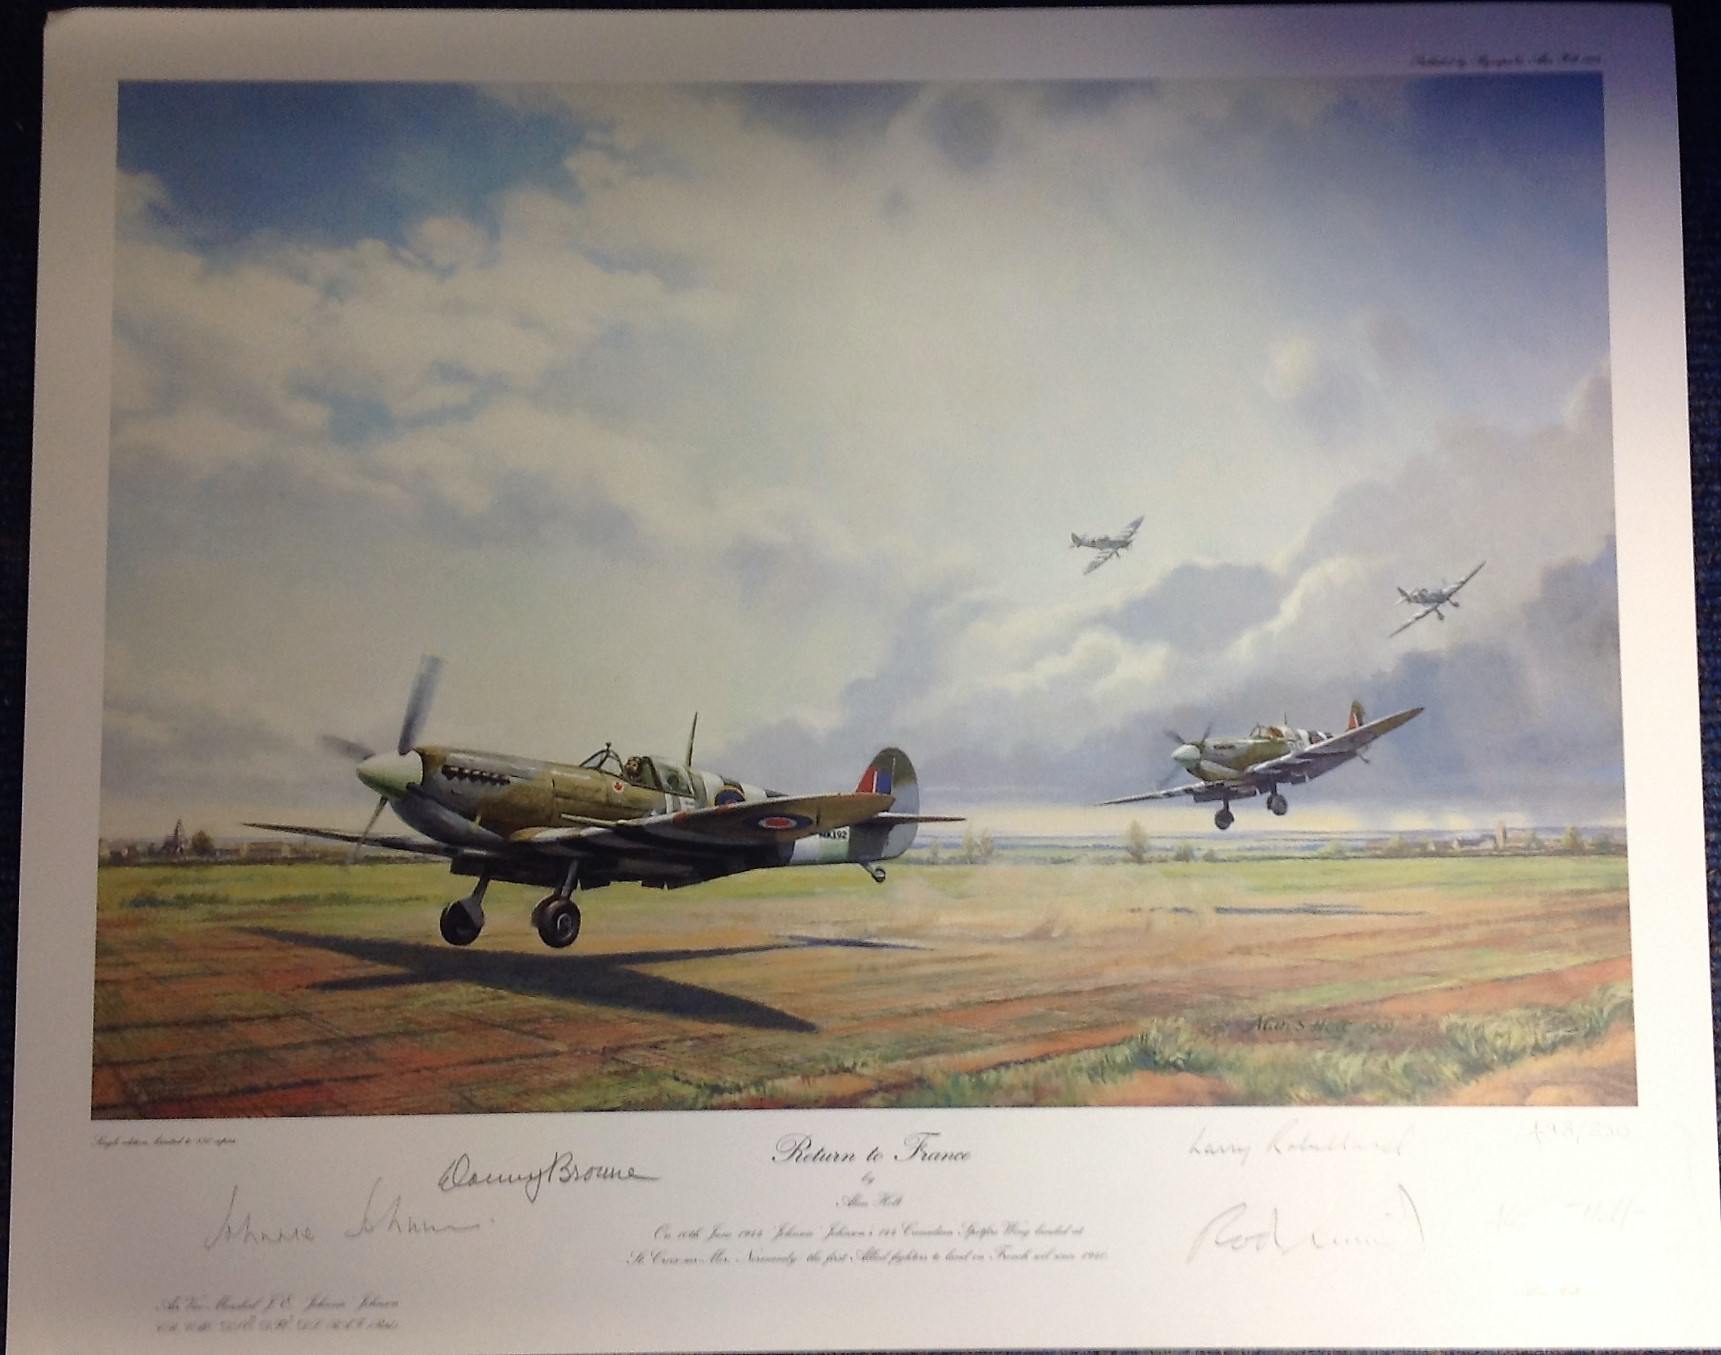 Lot 108 - World War Two print approx 18x20 titled RETURN TO FRANCE by the artist Alan Holt signed in pencil by